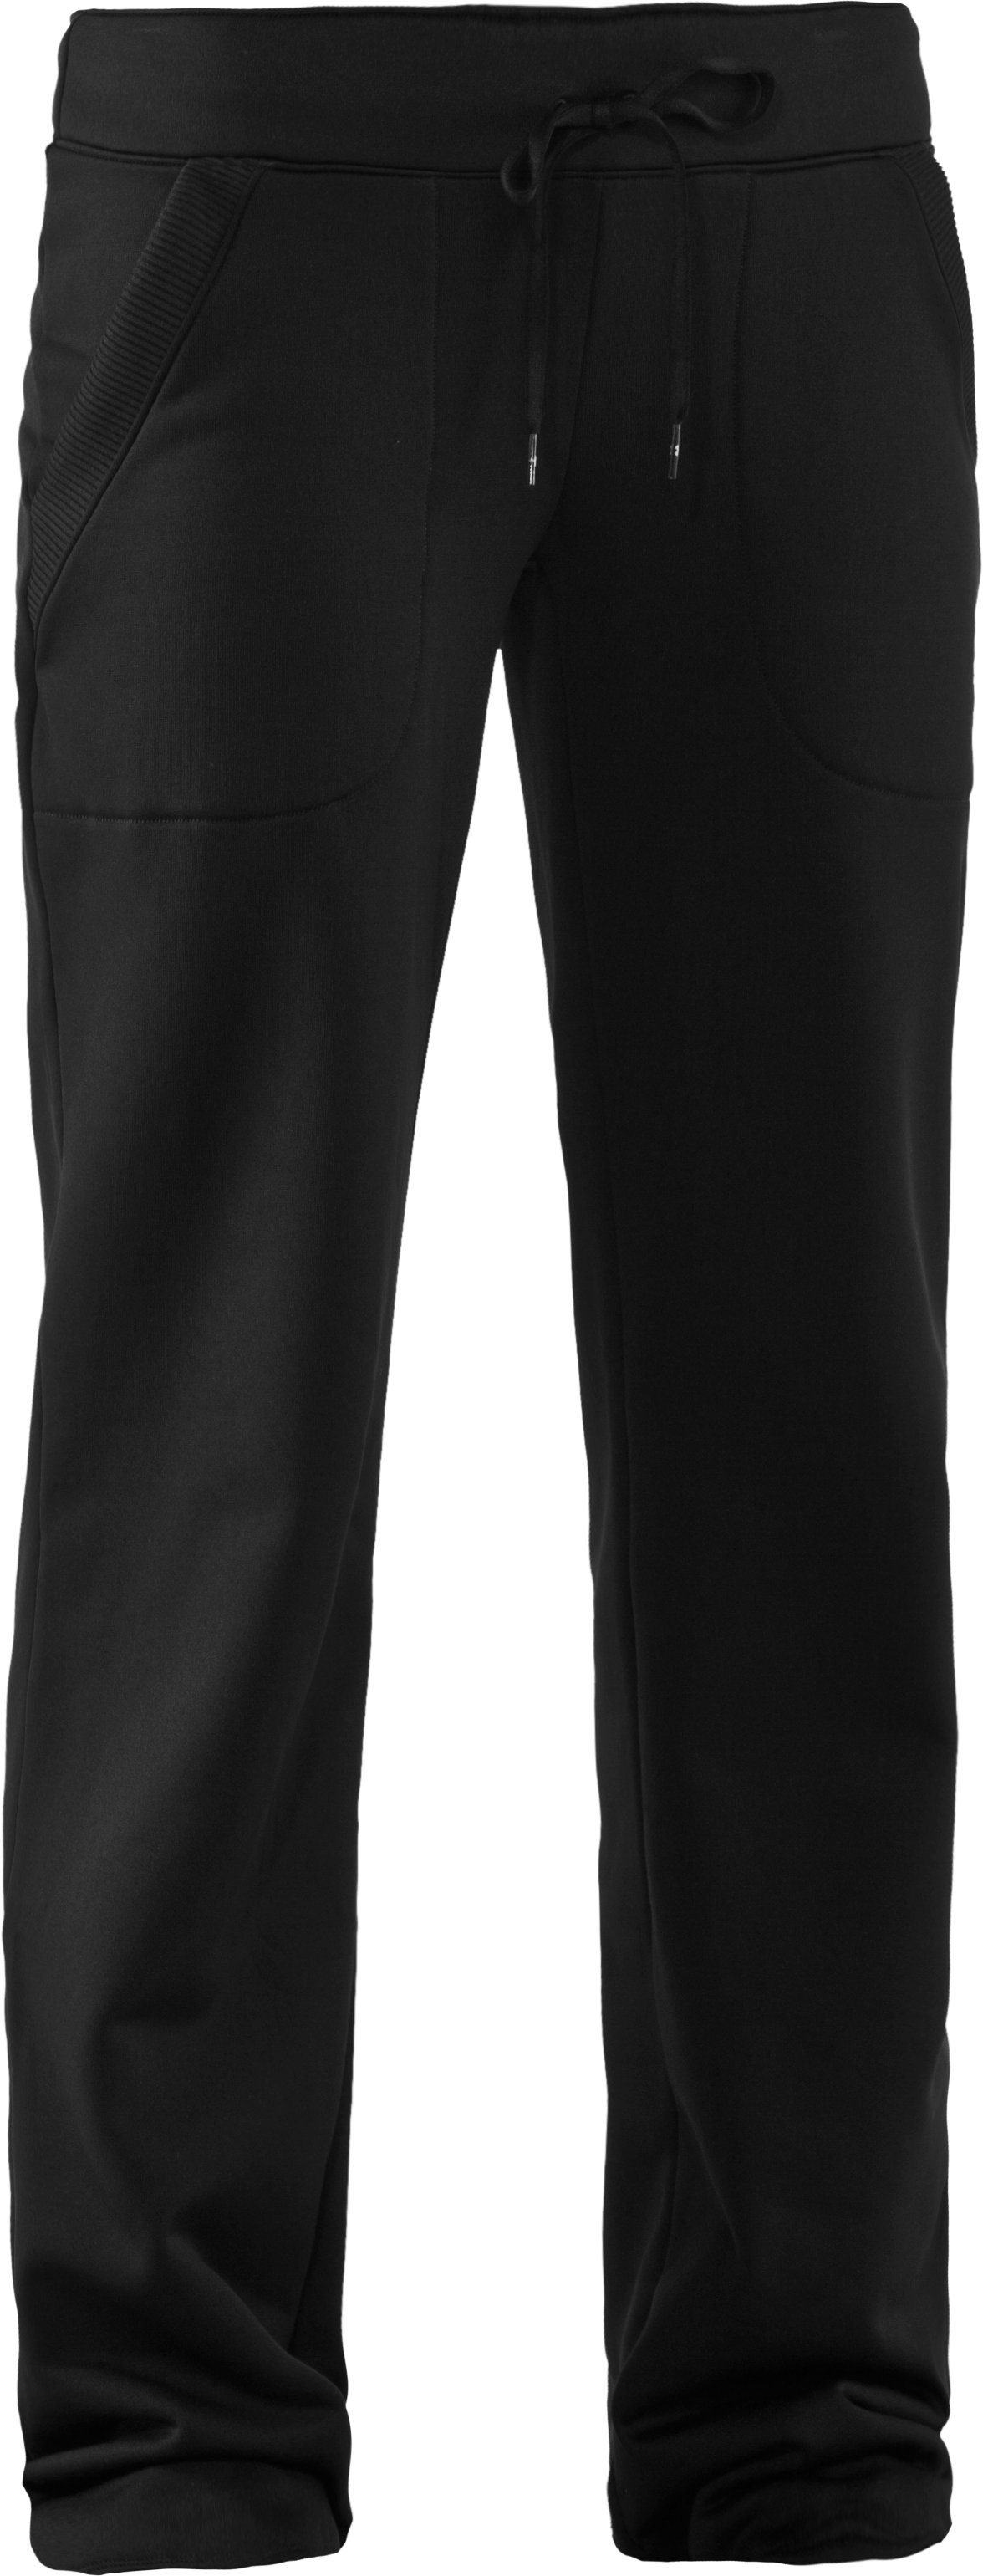 Women's Rhyme Stone Pant, Black